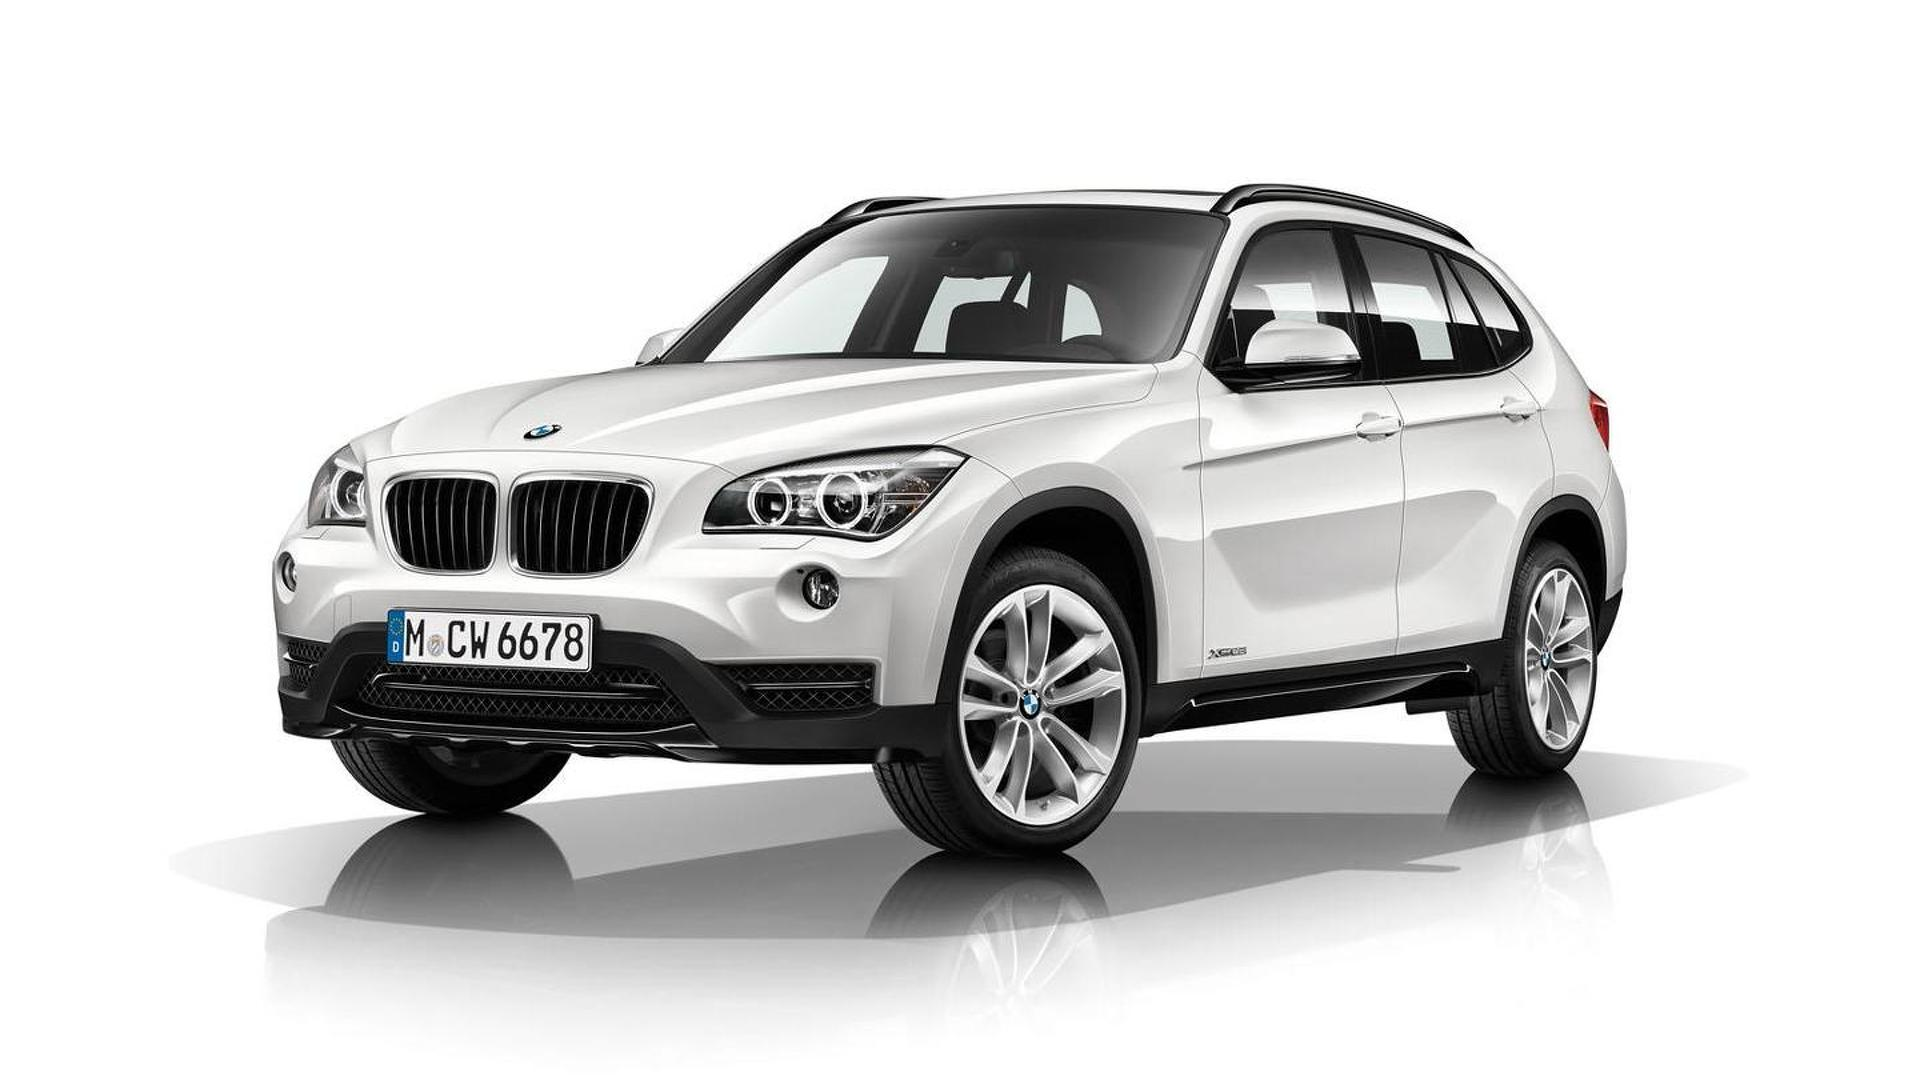 BMW X1 headed to Detroit with minor updates